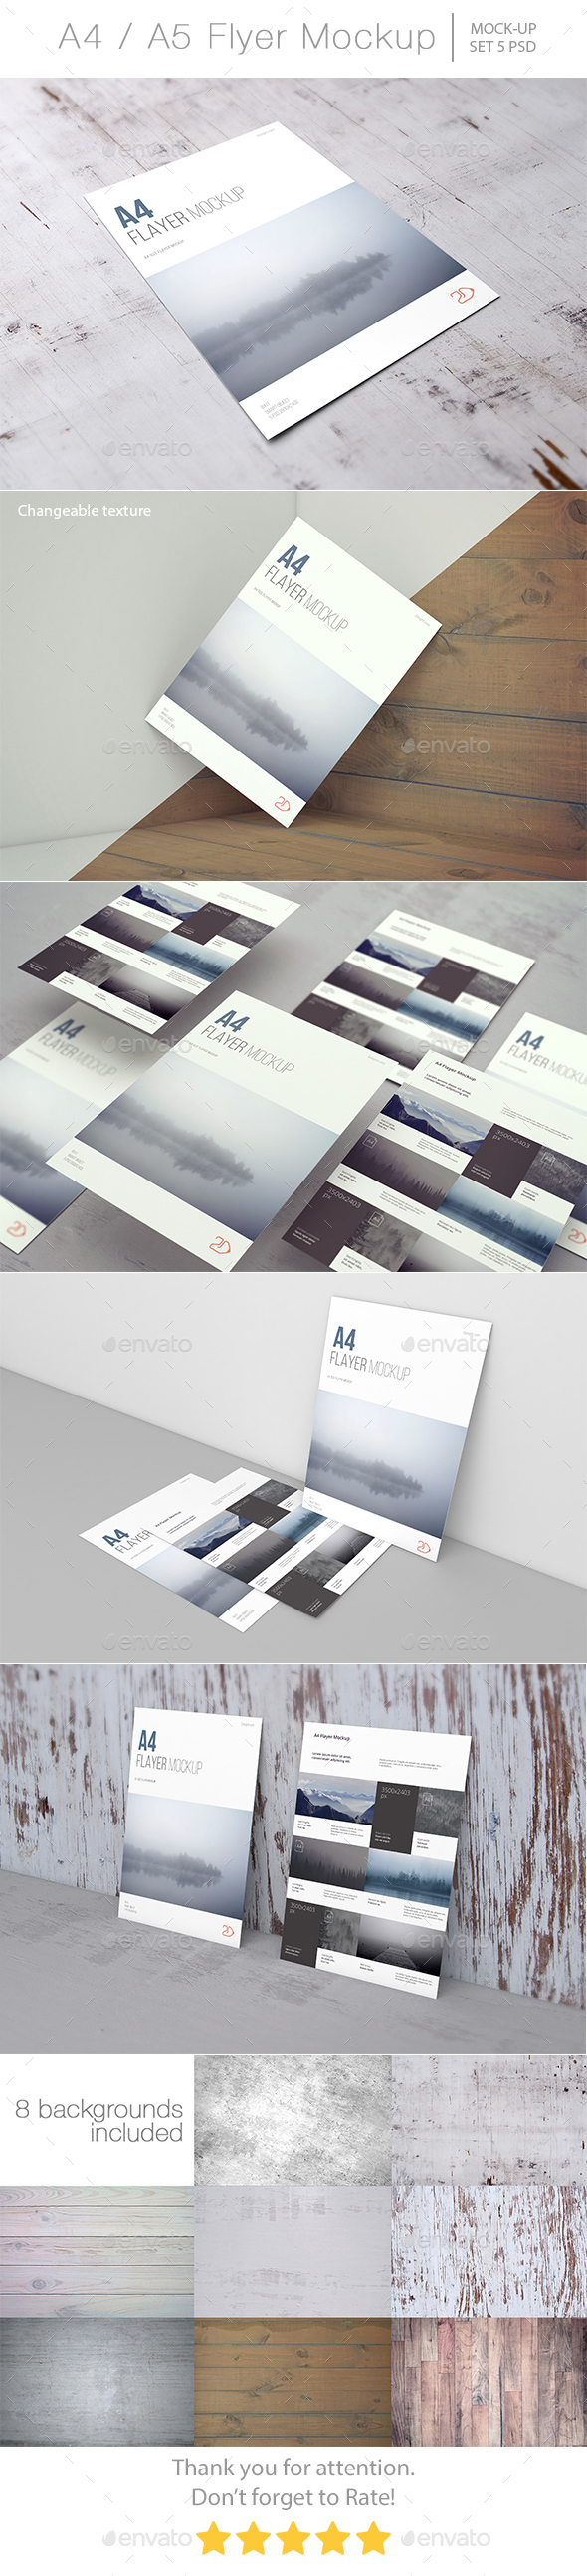 A4 / A5 Flyer Mockup - Product Mock-Ups Graphics